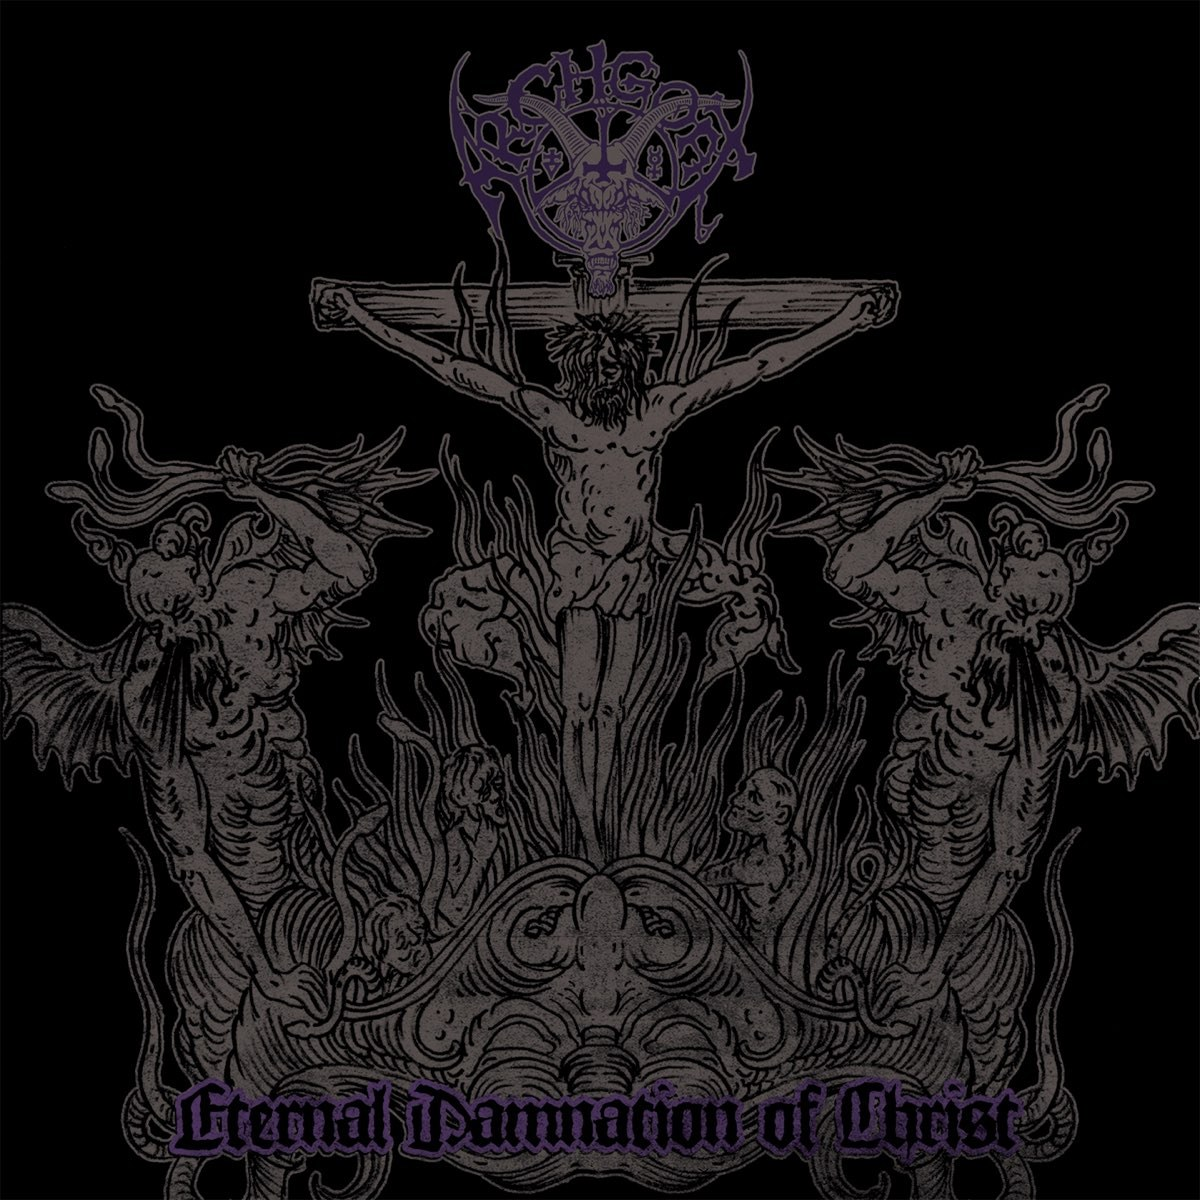 Review for Archgoat - Eternal Damnation of Christ